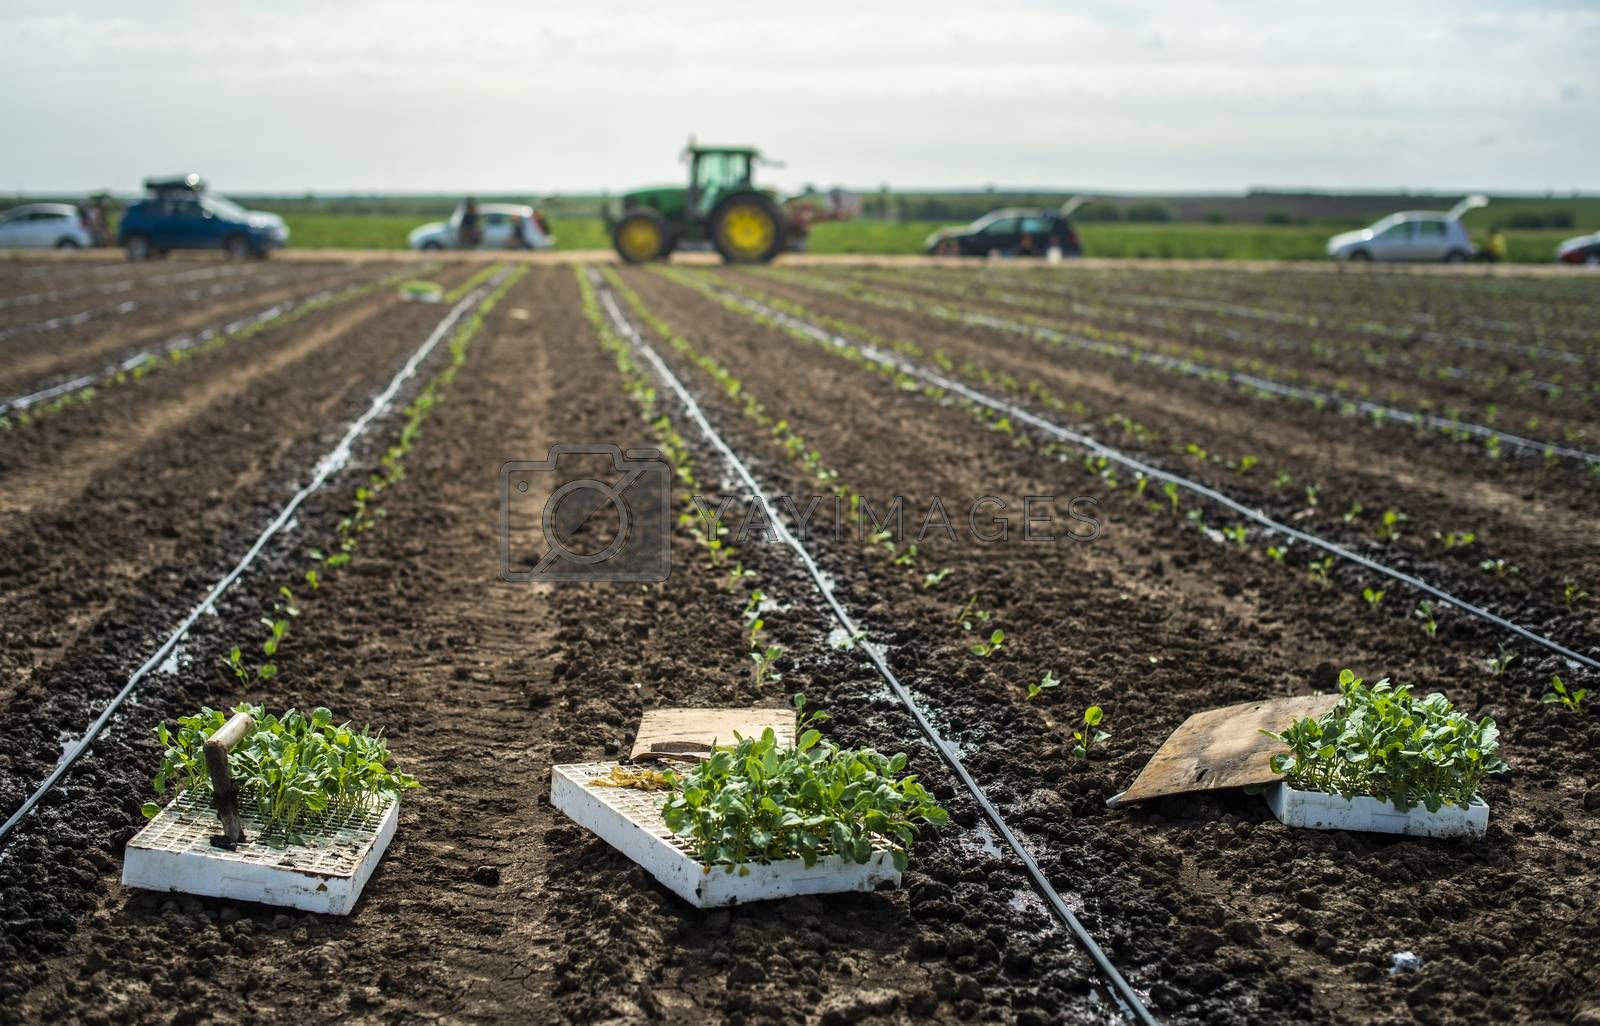 Seedlings in crates on the agriculture land. Planting new plants in soil. Big plantation. Planting broccoli in industrial farm. Tractor on the background.